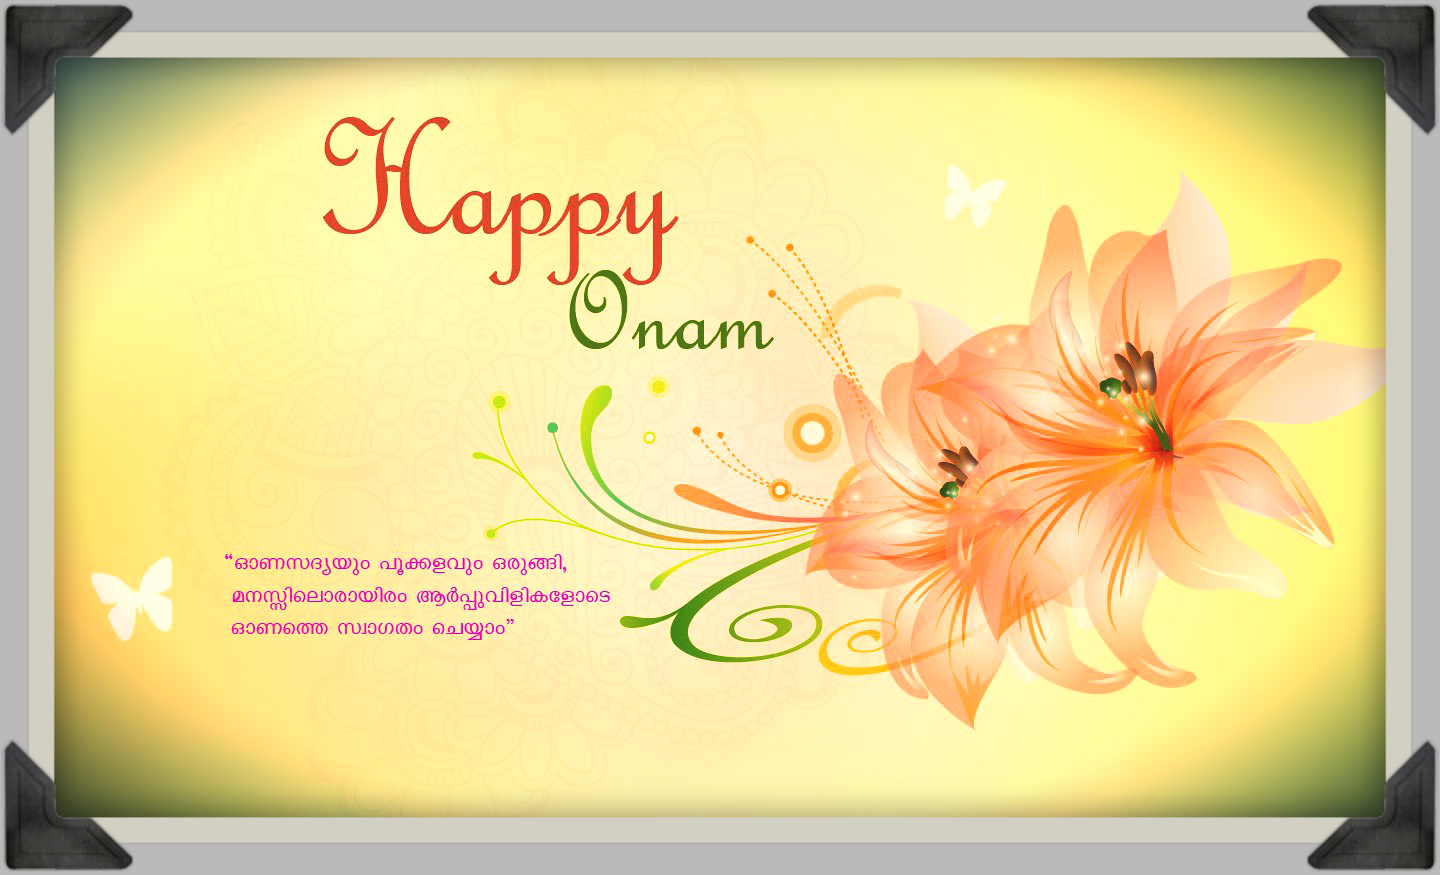 Happy Onam Images Wishes Photos Greetings Messages In Malayalam